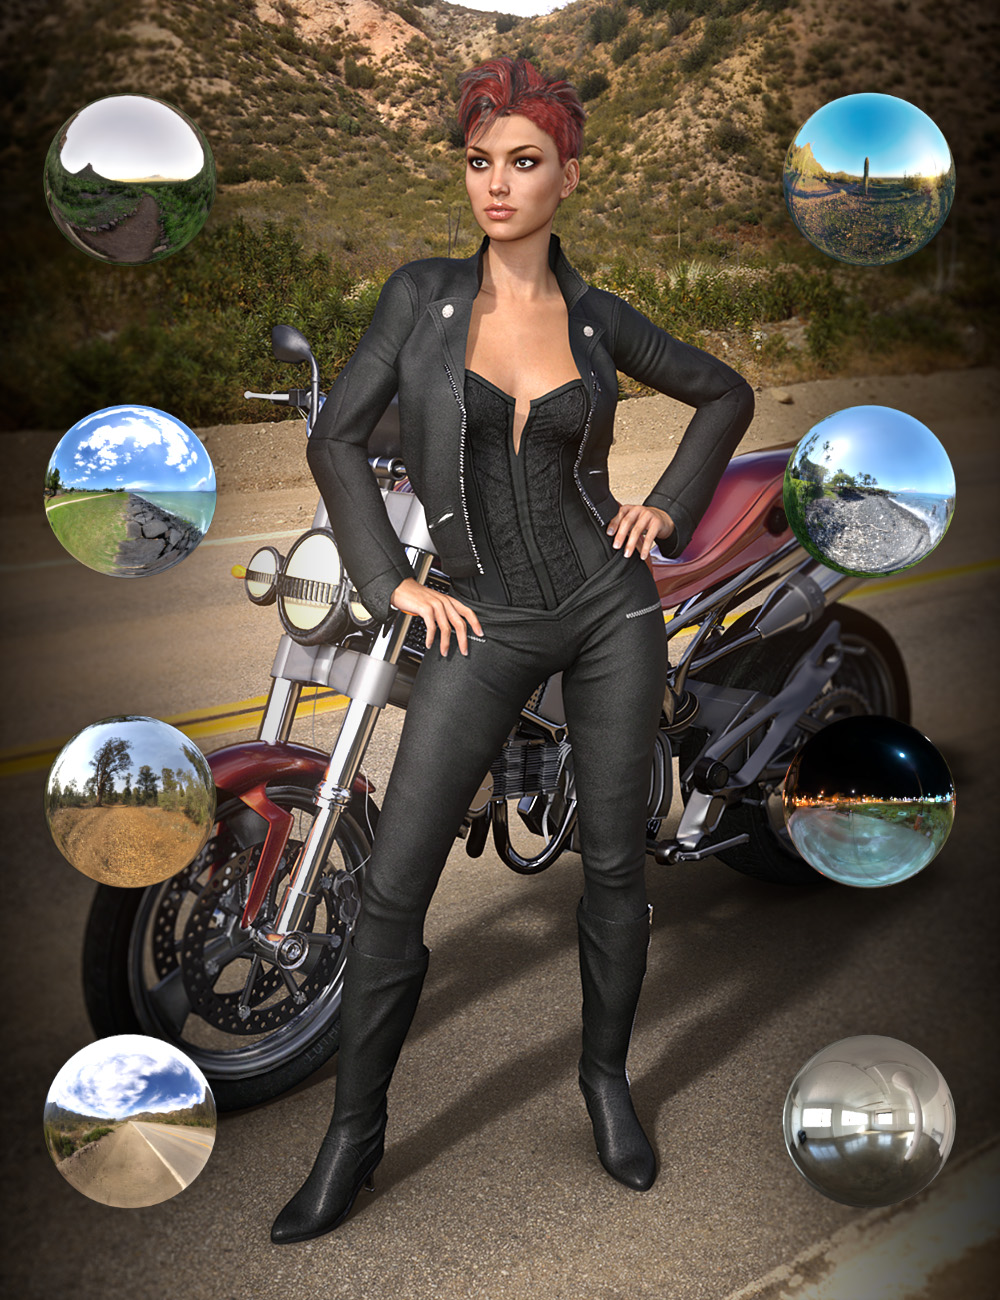 iRadiance - HDRI Variety Pack Two by: DimensionTheory, 3D Models by Daz 3D